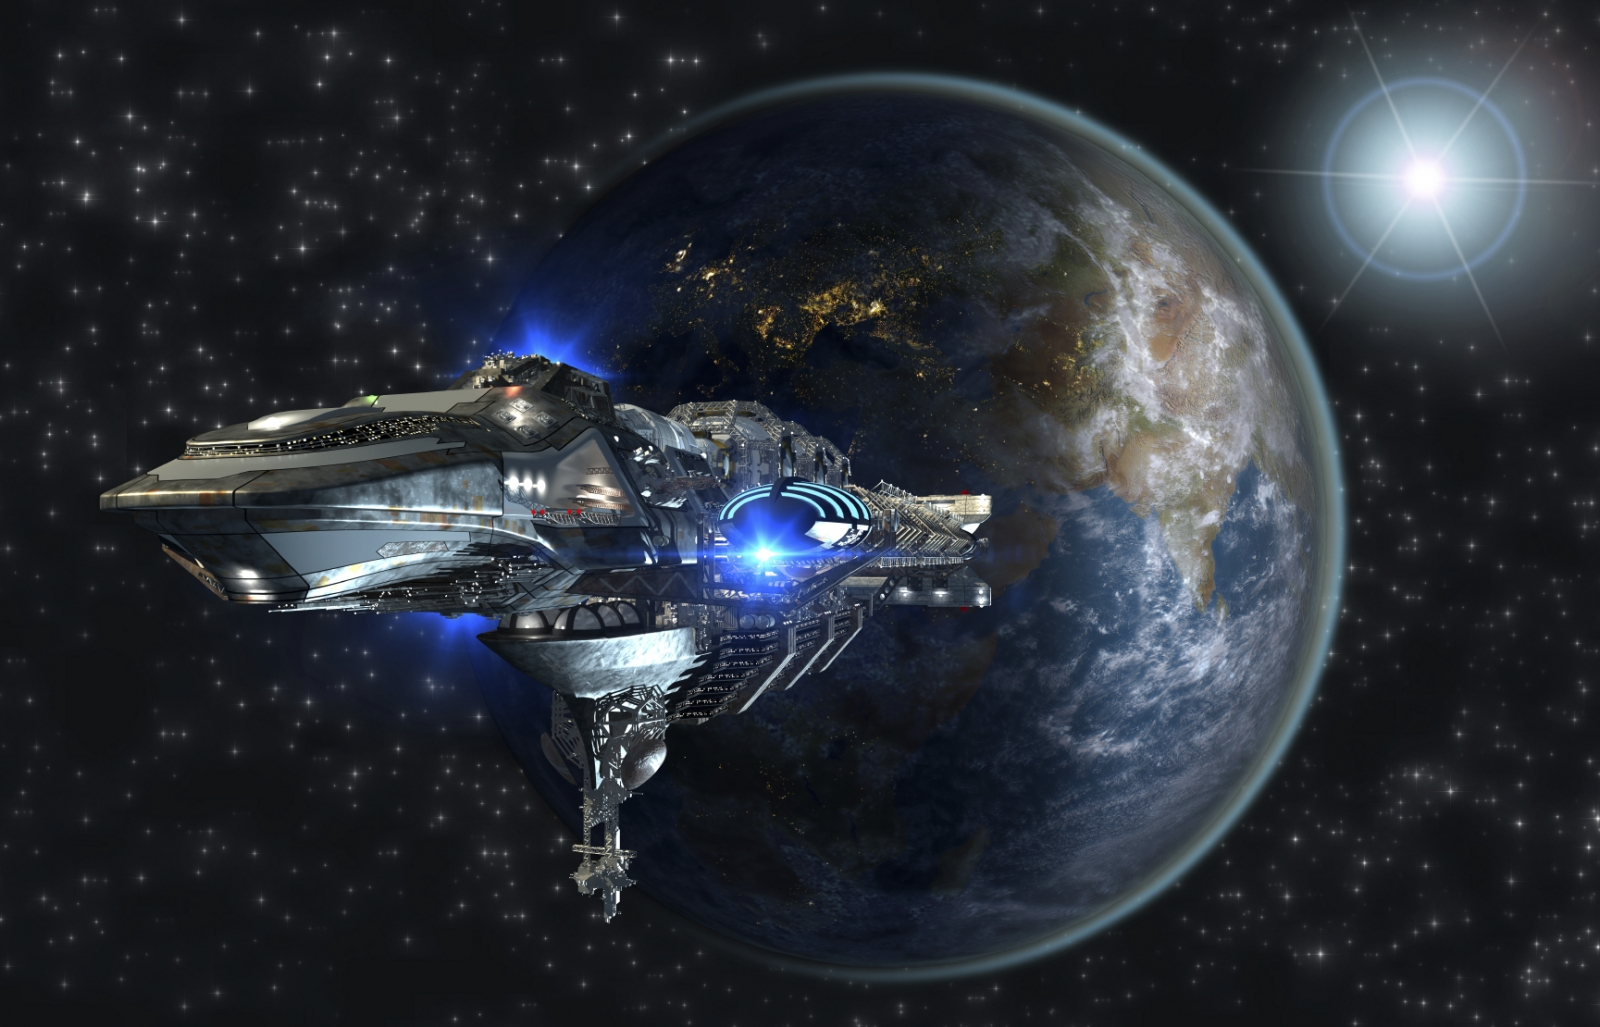 Could space travel be possible with EmDrive?